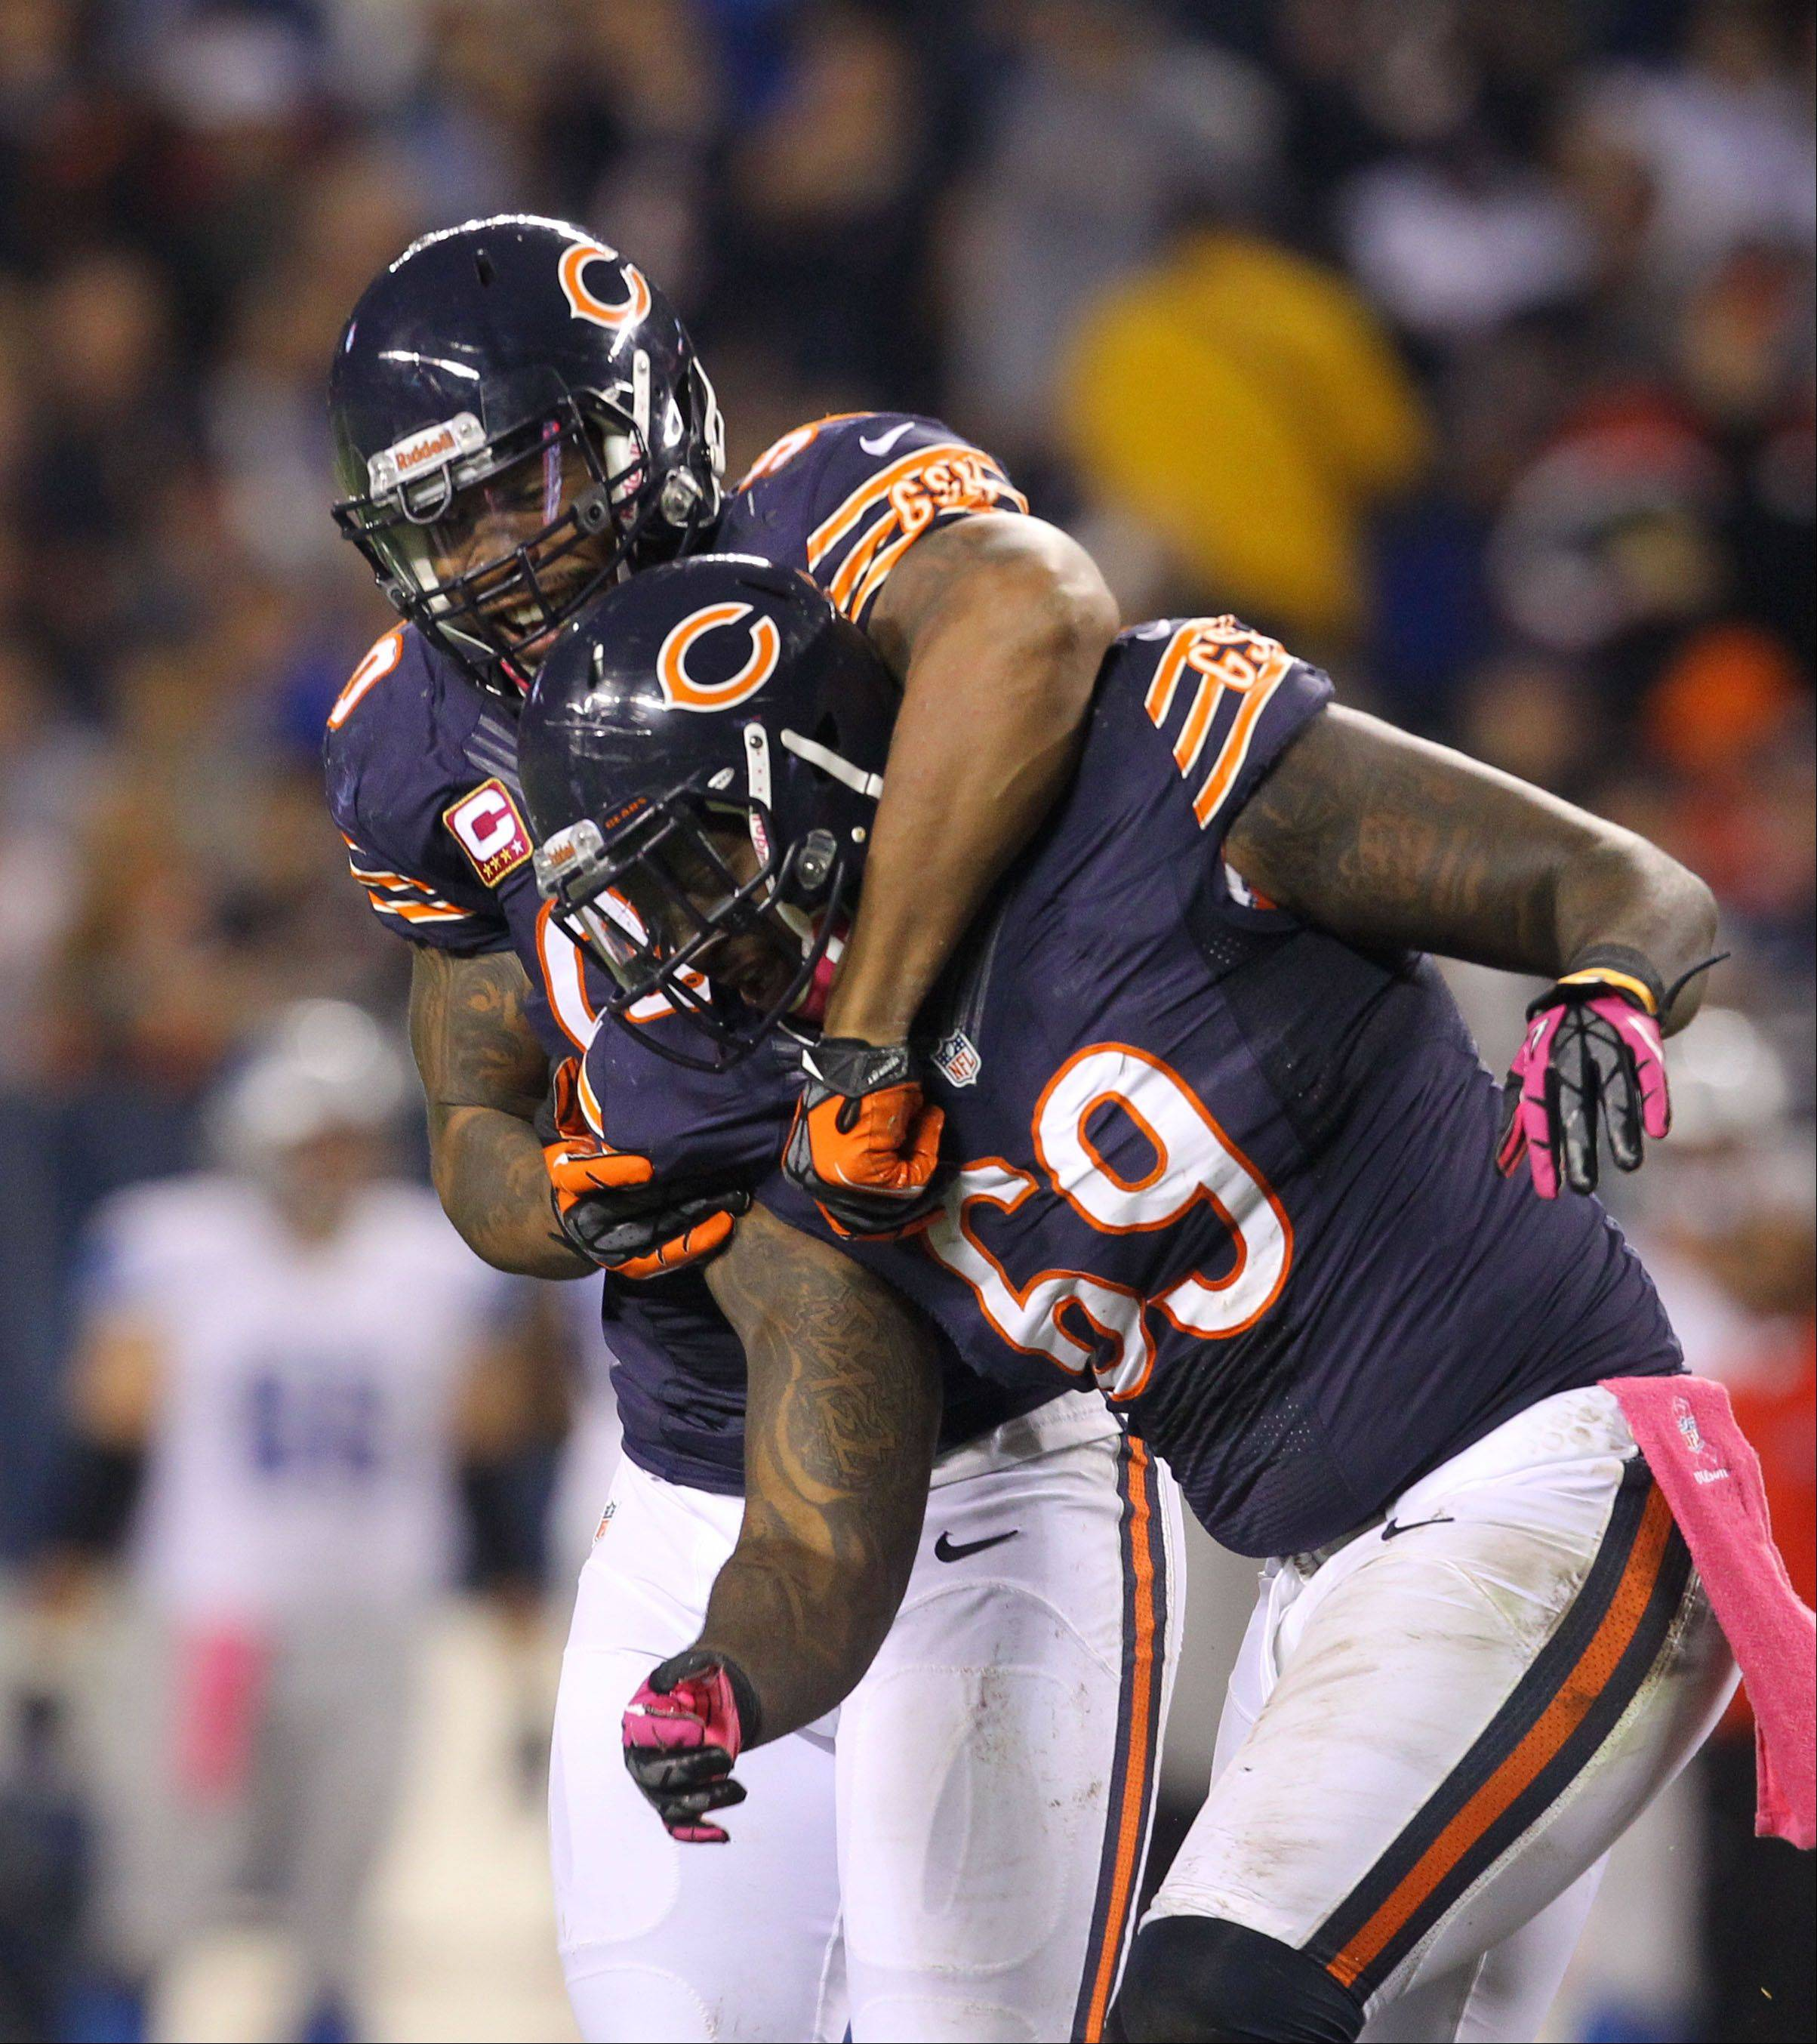 Chicago Bears defensive end Julius Peppers celebrates with Chicago Bears defensive tackle Henry Melton after Peppers sacked Detroit Lions quarterback Matthew Stafford in the first half.